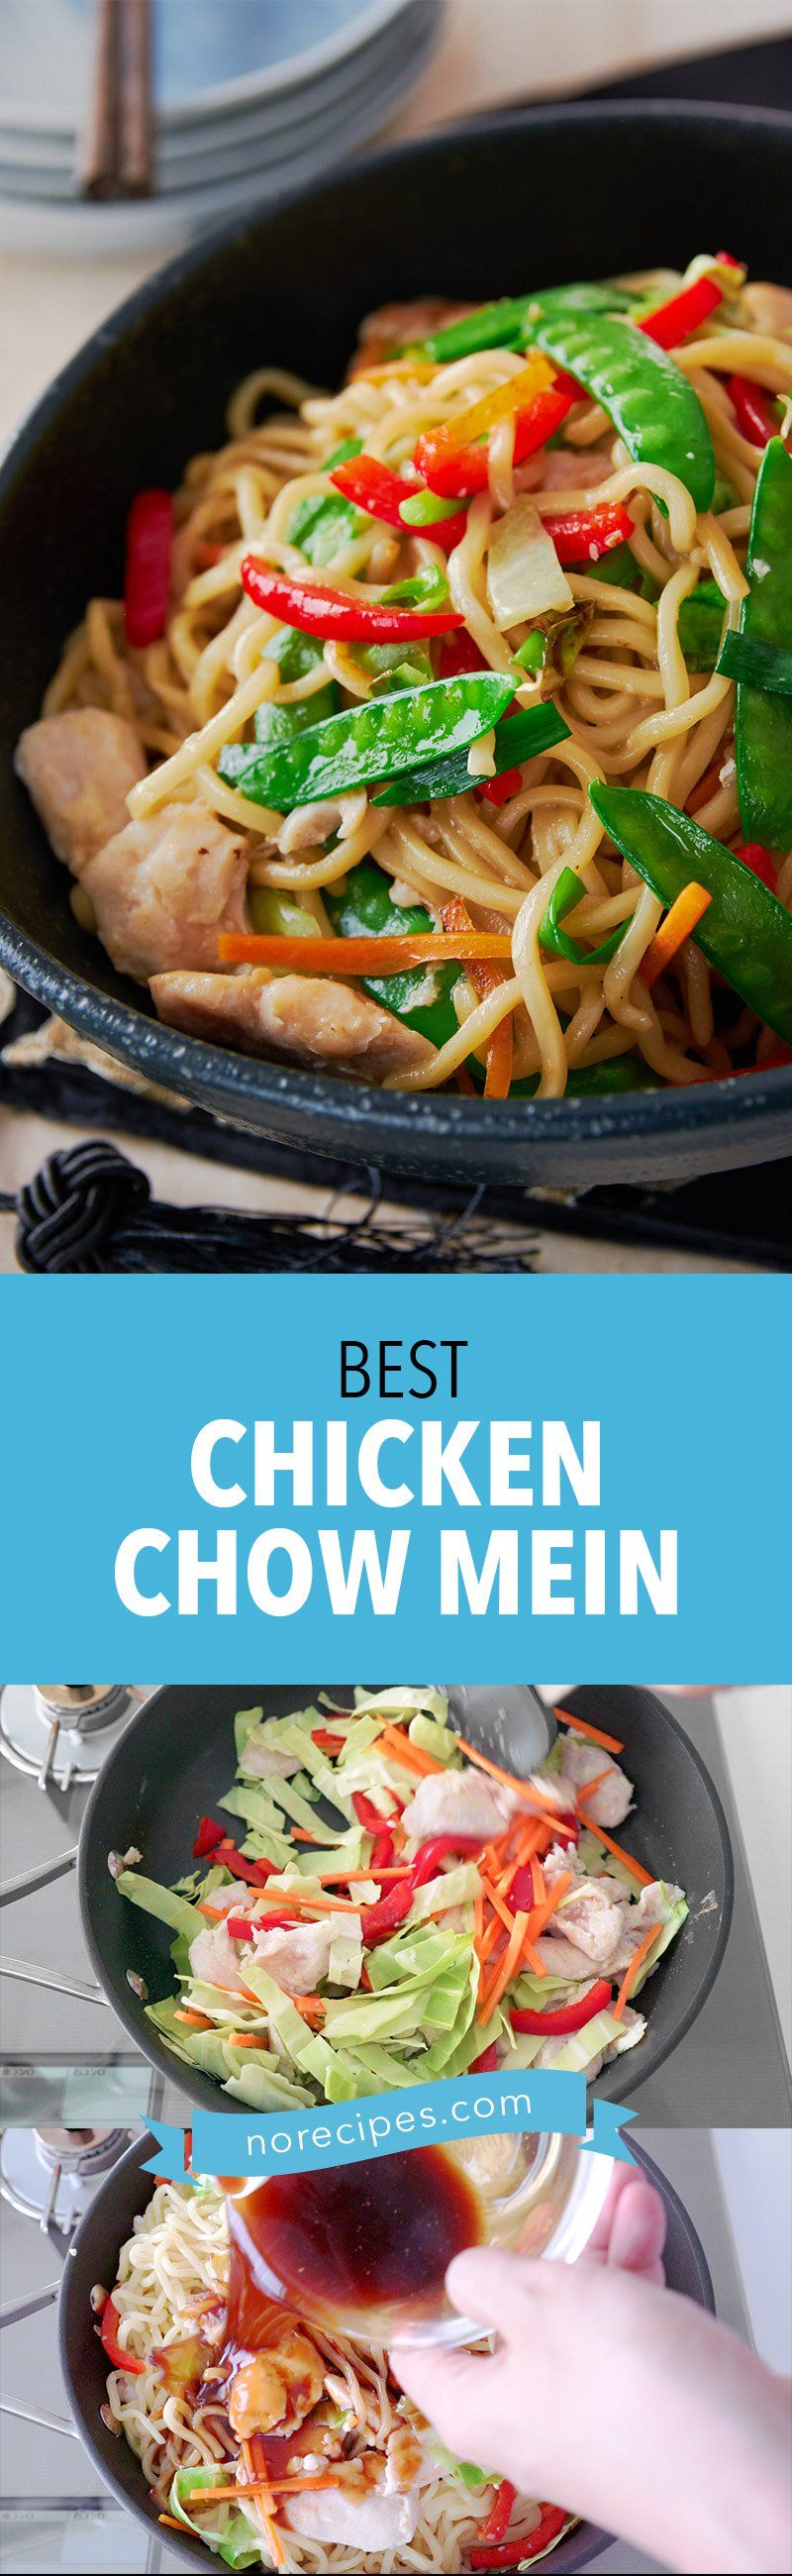 best chicken chow mein recipe 炒面  food and recipes